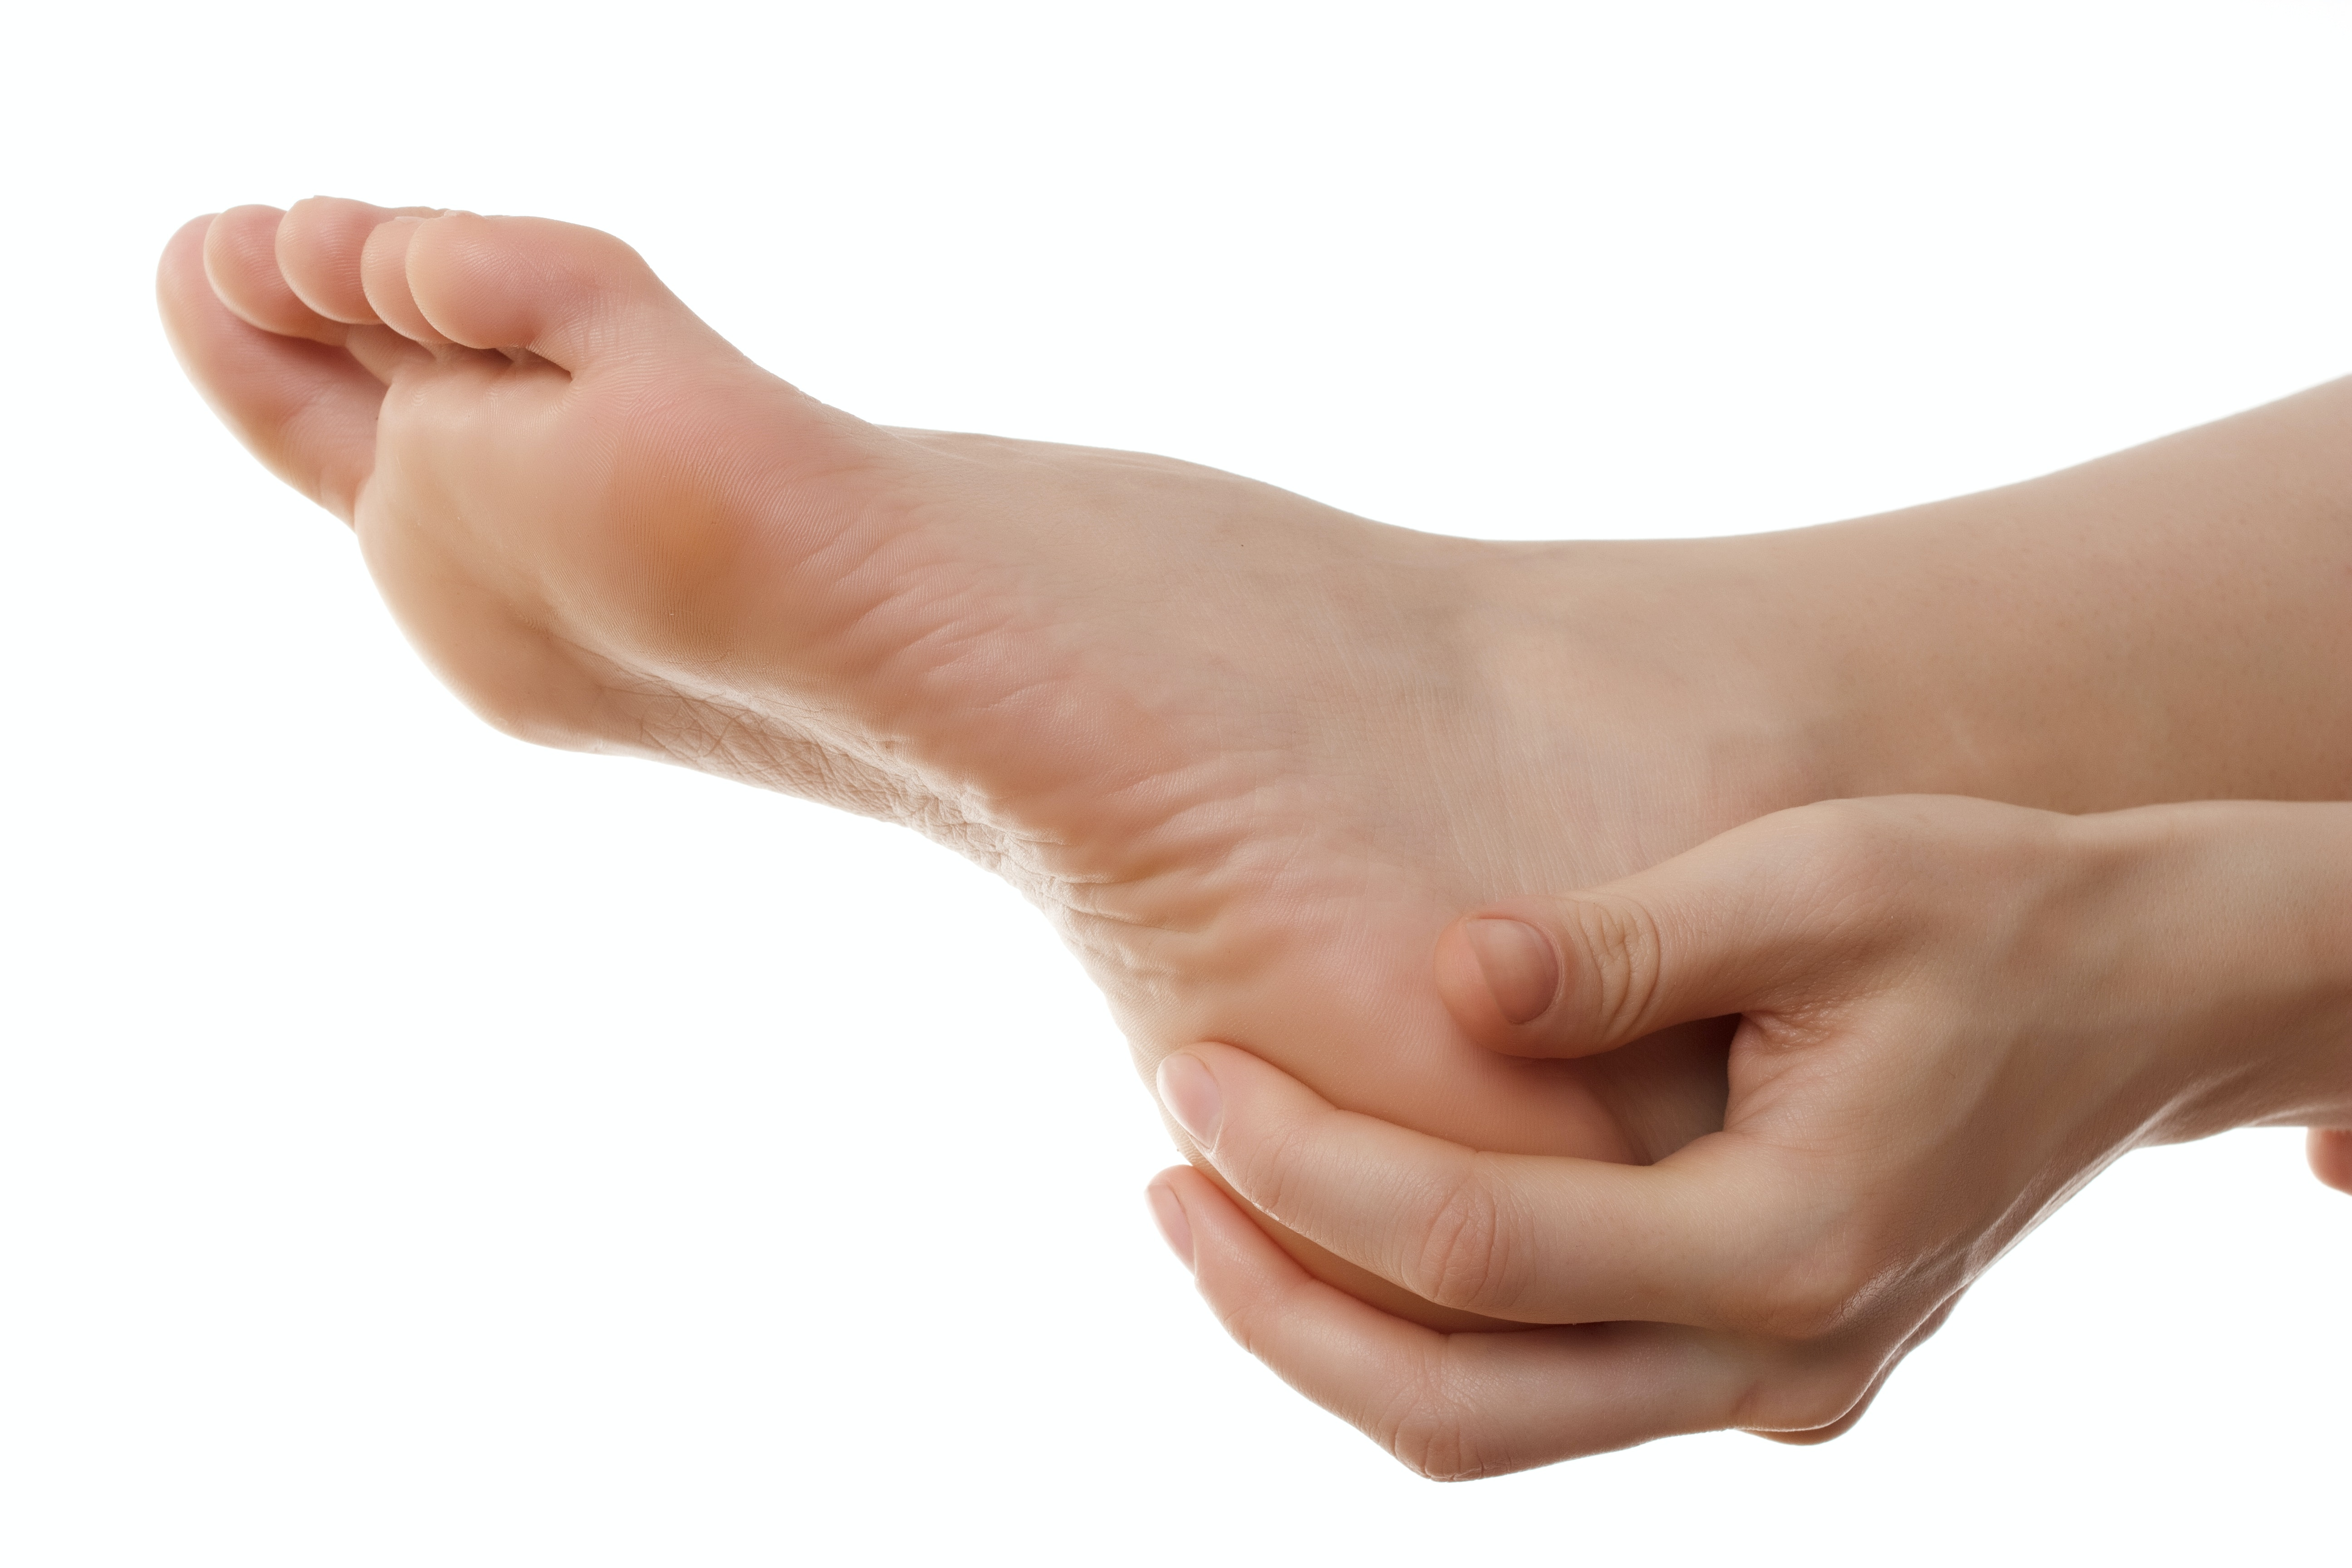 An image depicting a person suffering from numbness in the heel-side of the foot symptoms